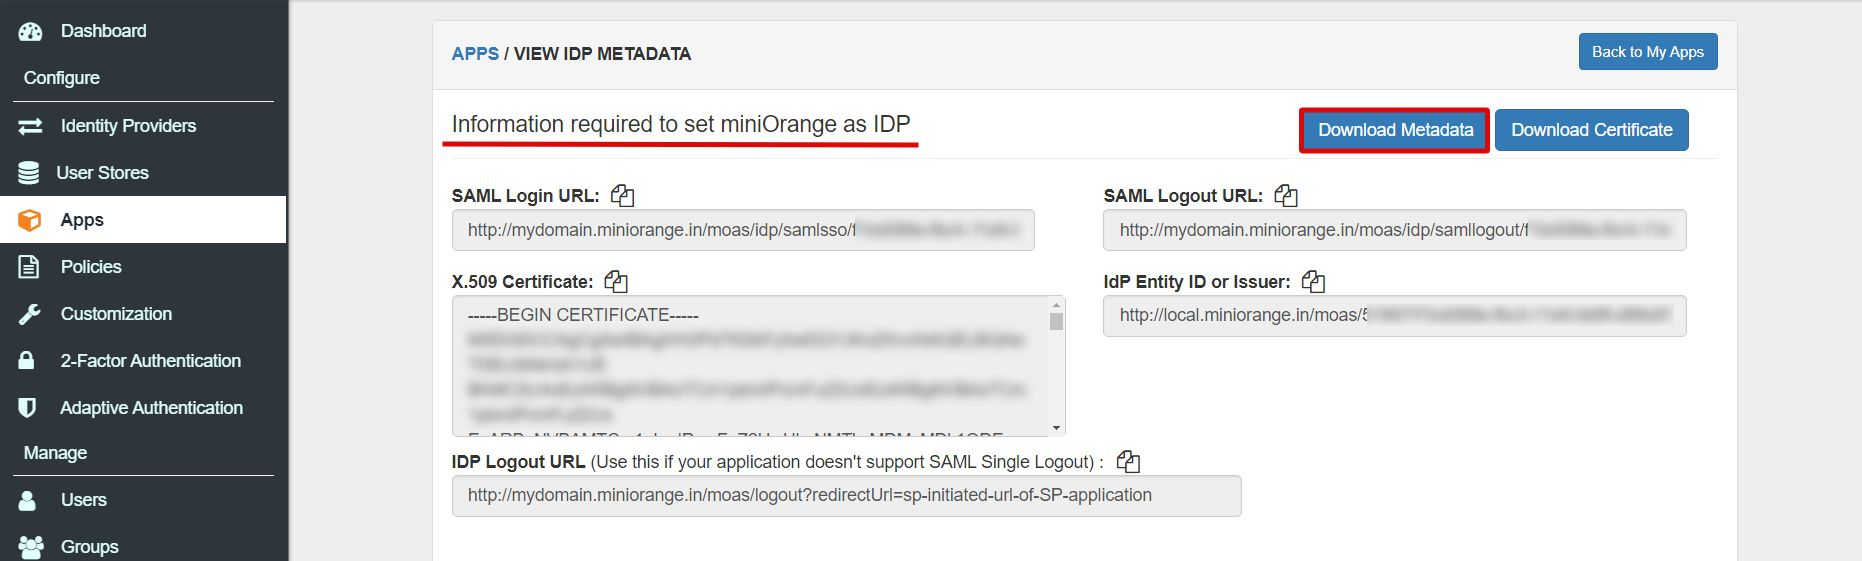 Moodle Single Sign On (SSO) Moodle Login idp_metadata